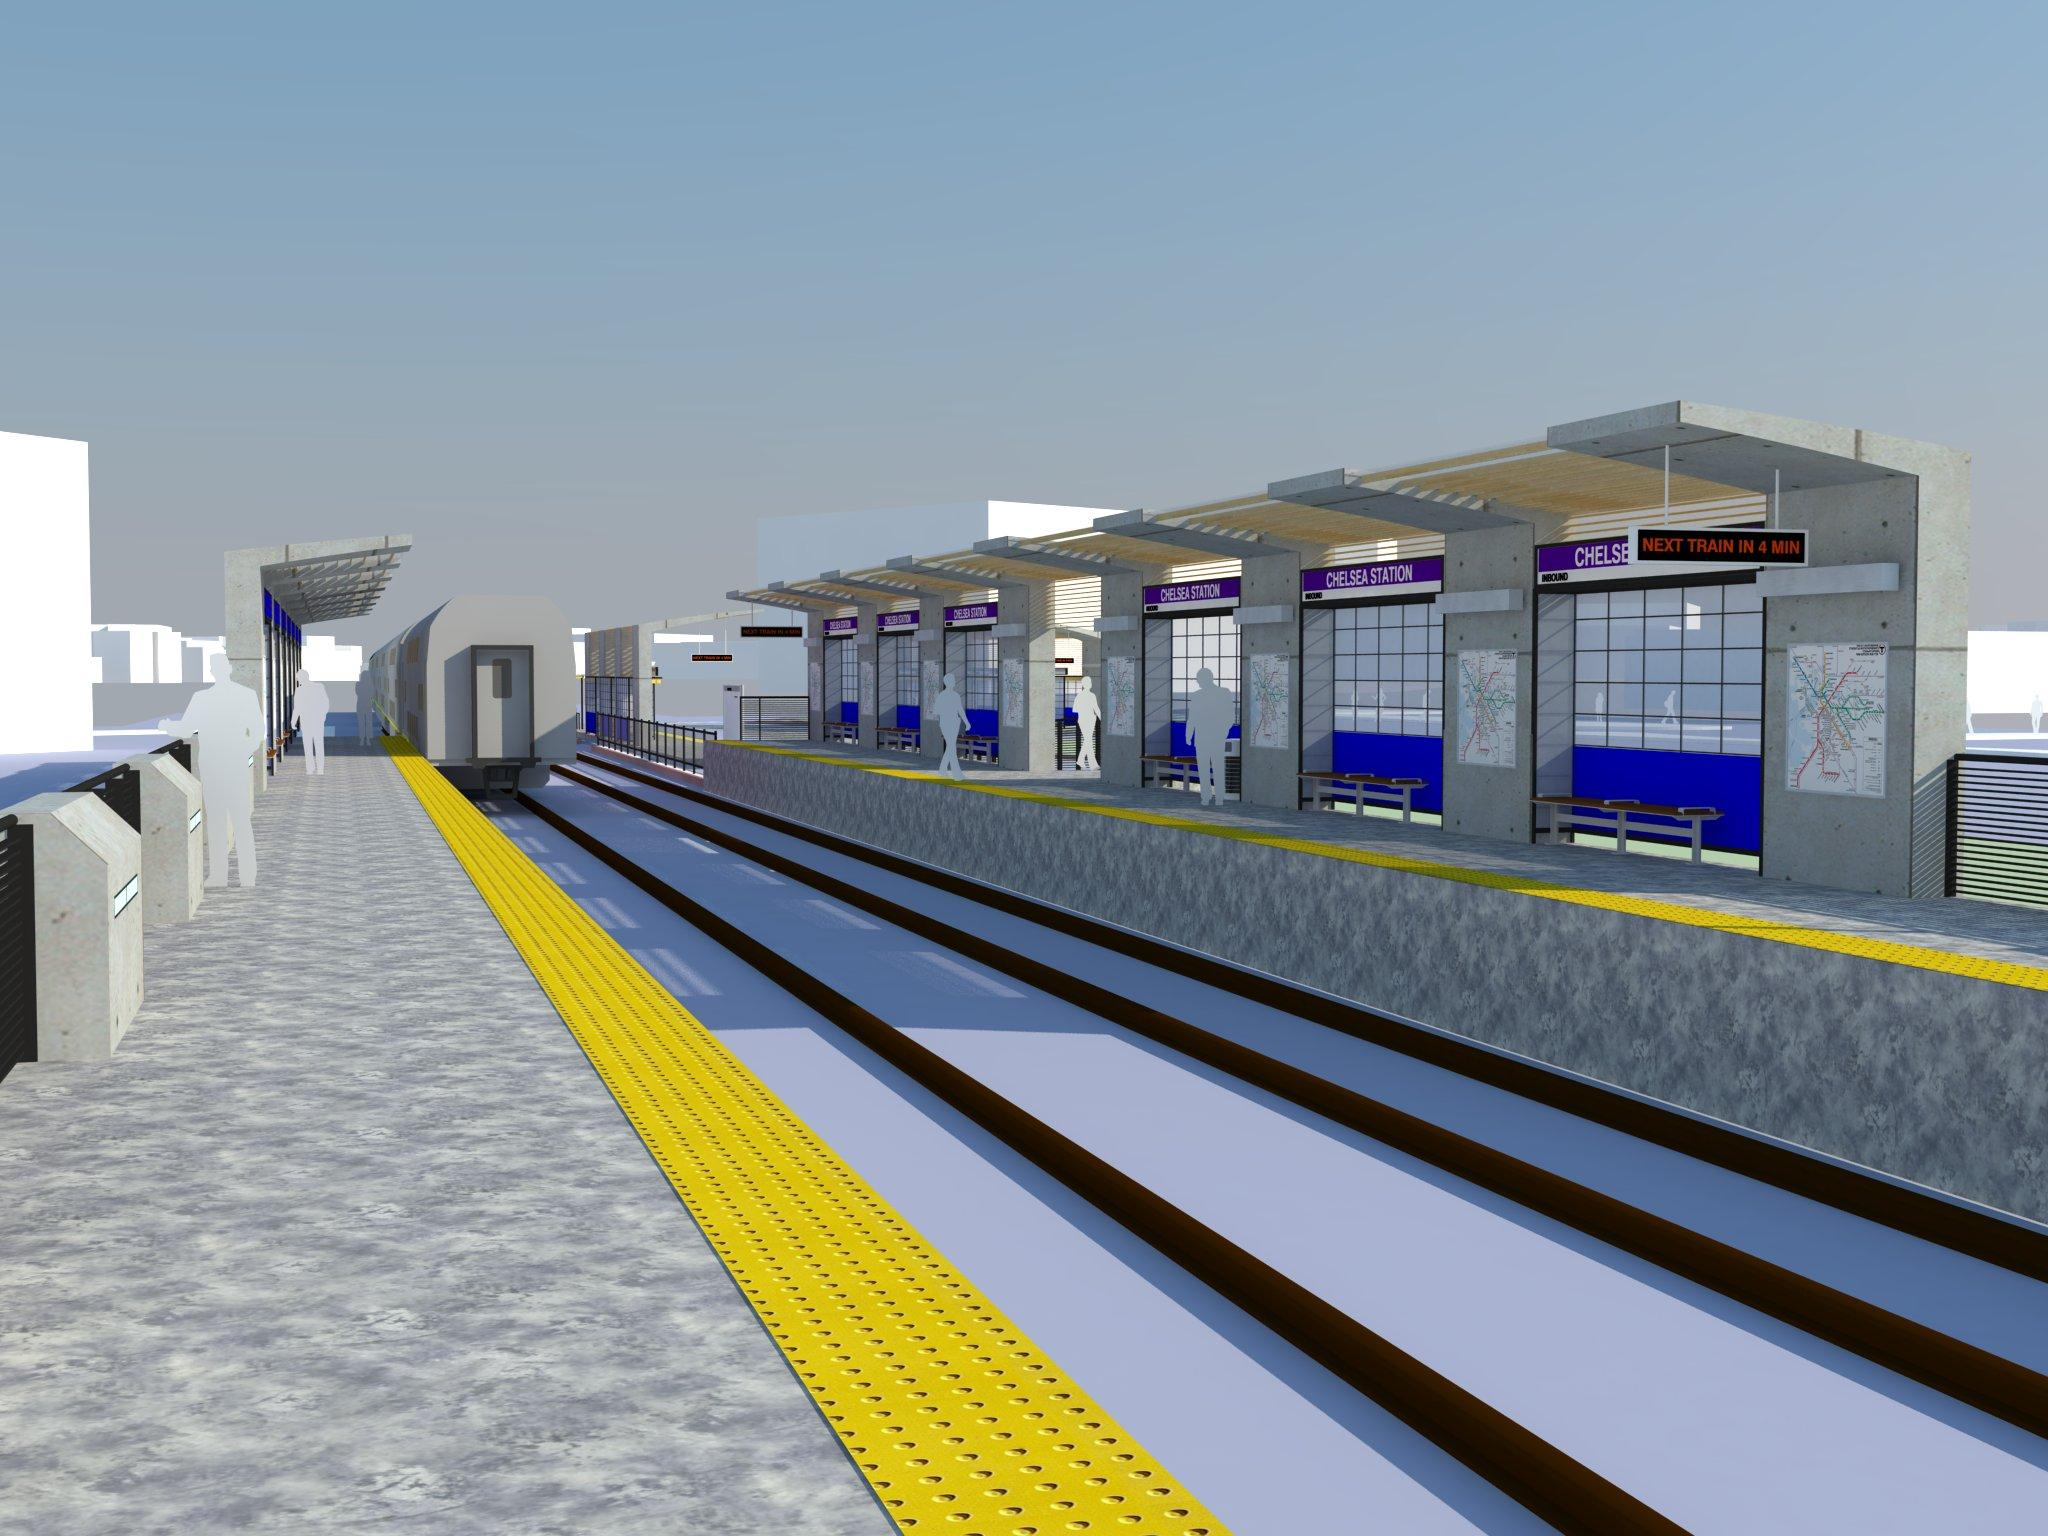 A rendering of the new Chelsea Commuter Rail Station, with a full view of the platfrom from afar